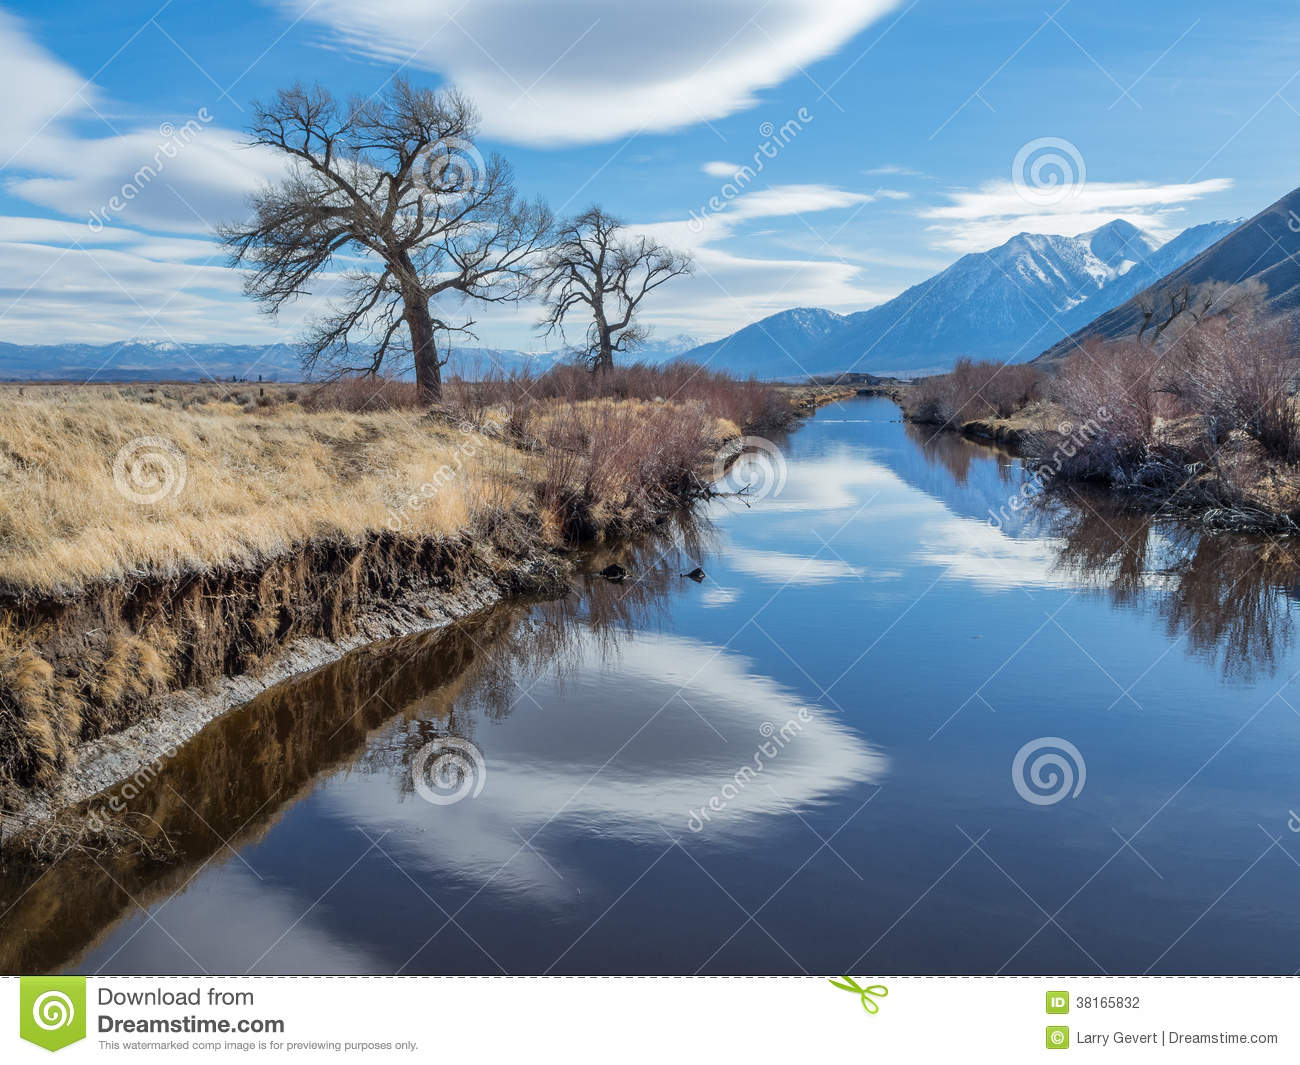 Cloud reflections in the Carson River Valley